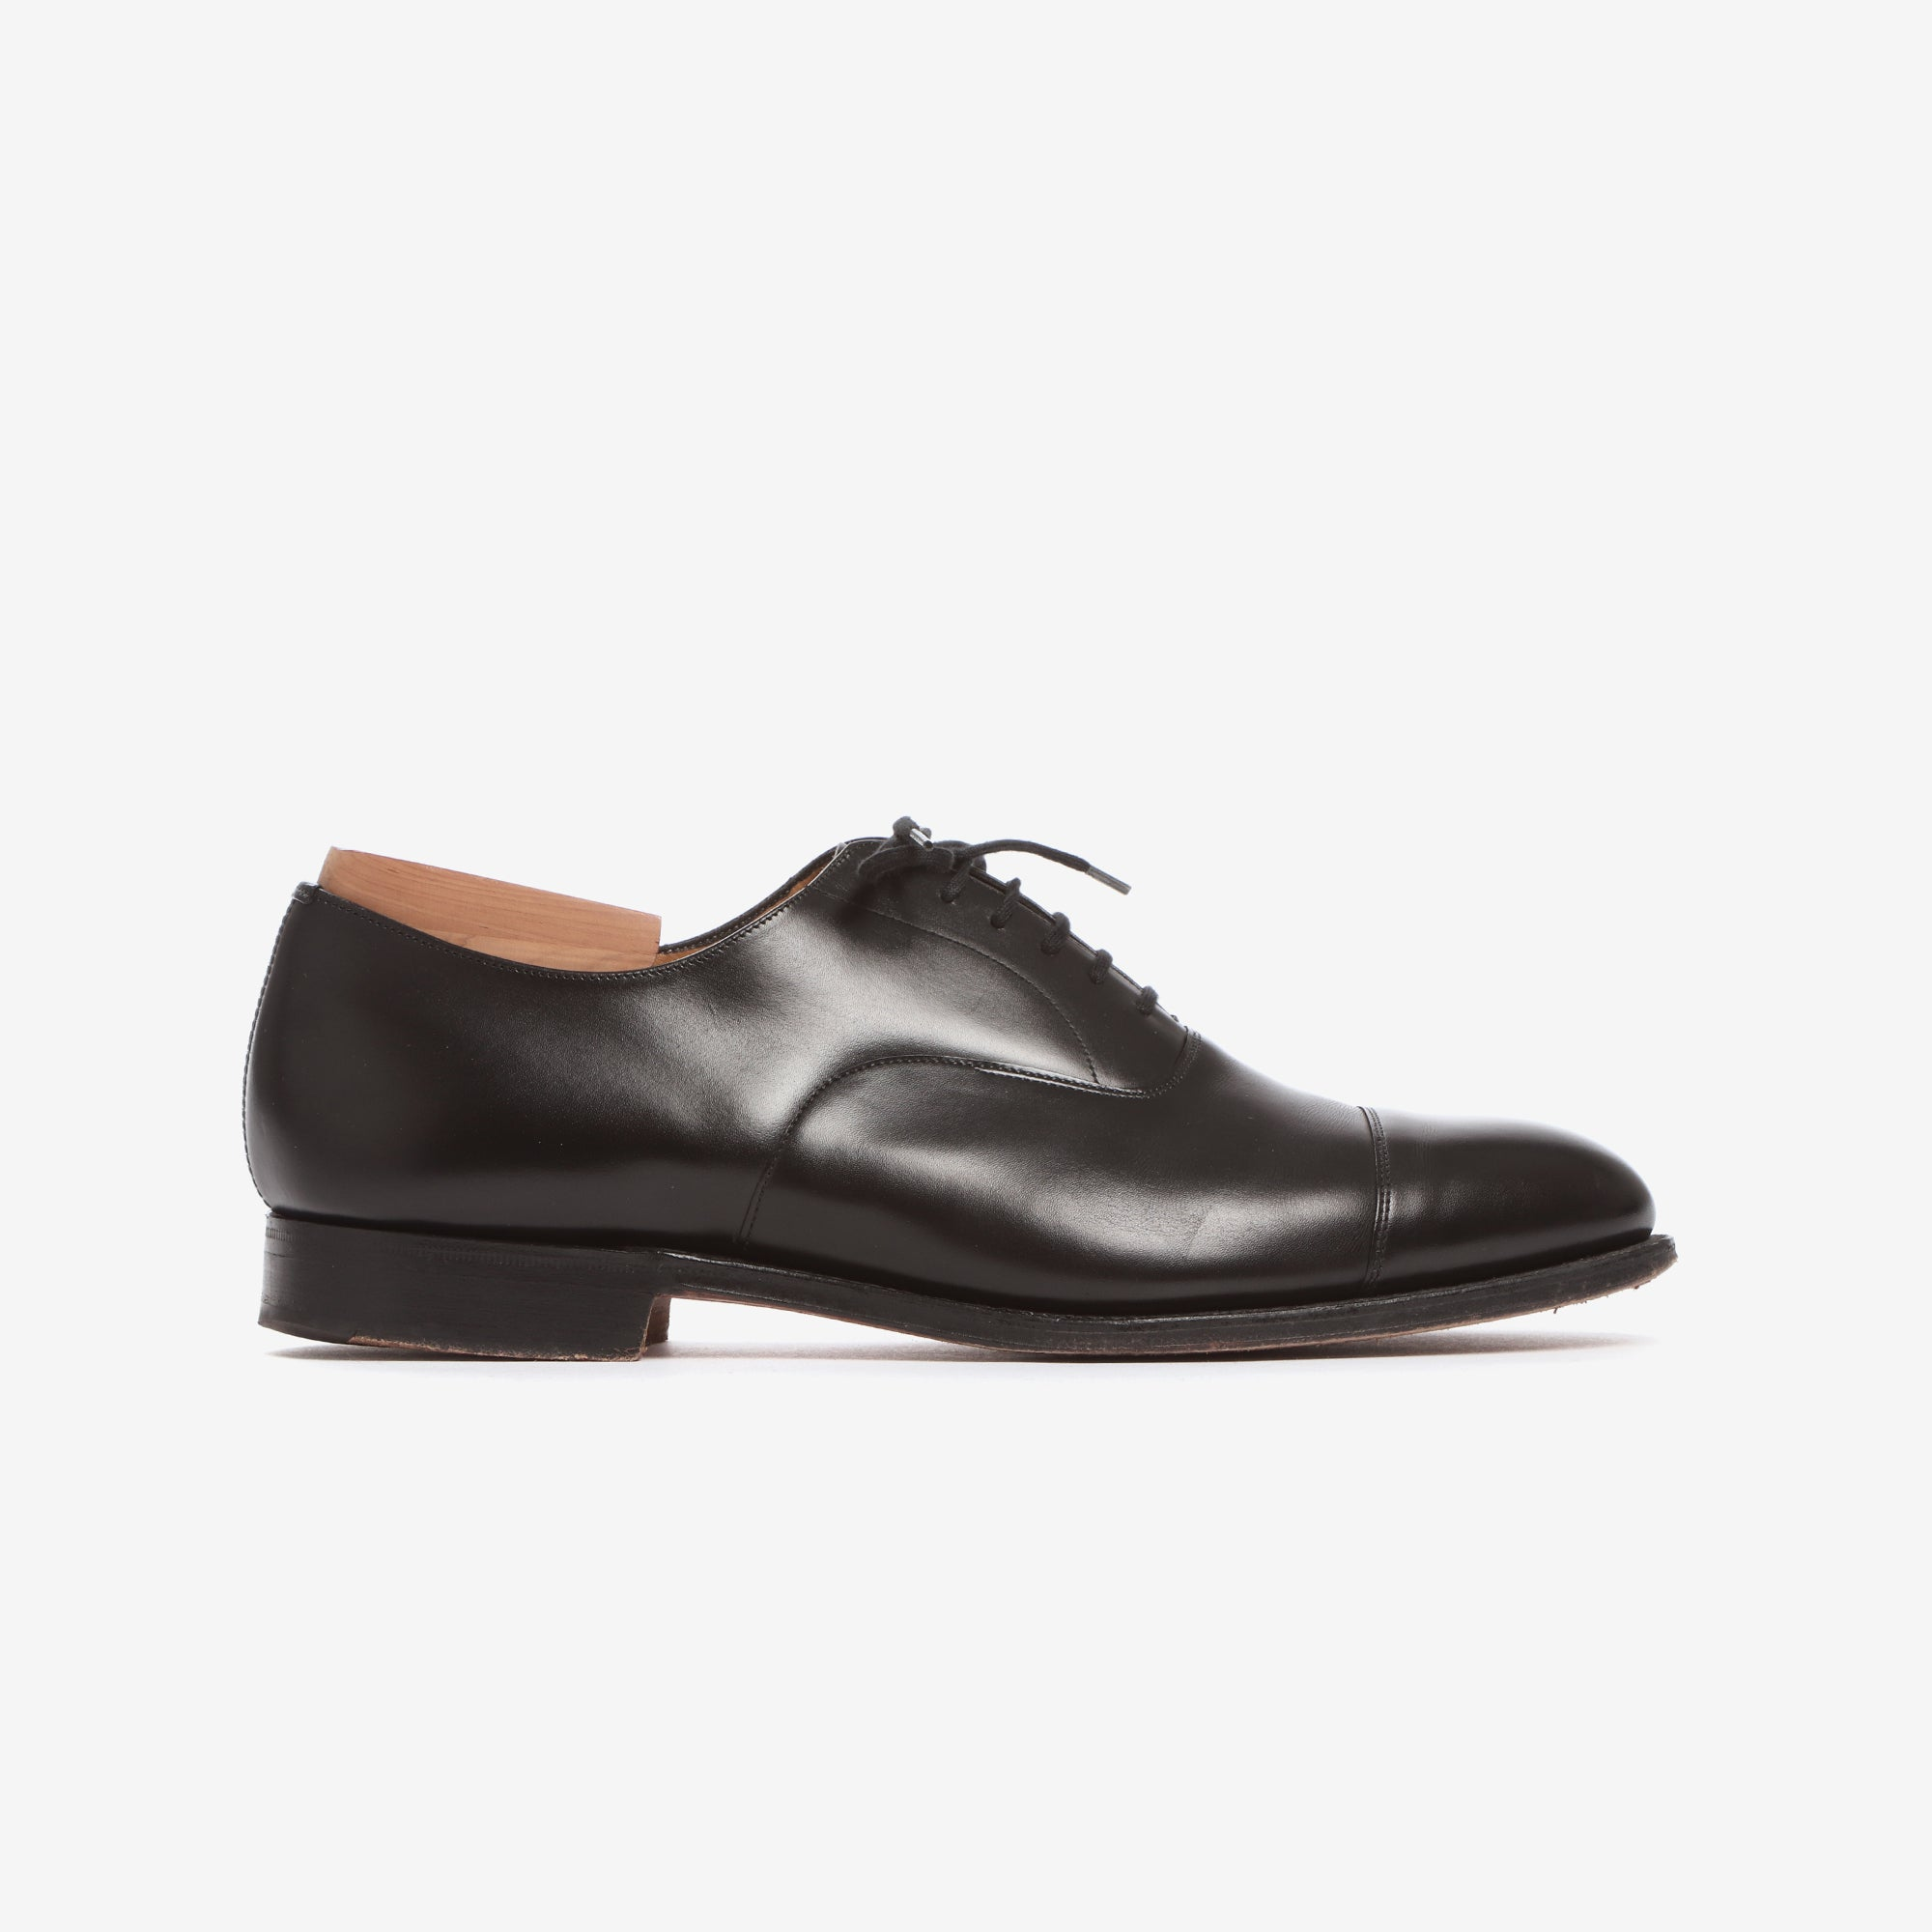 Consul 1945 Leather Oxford Shoes